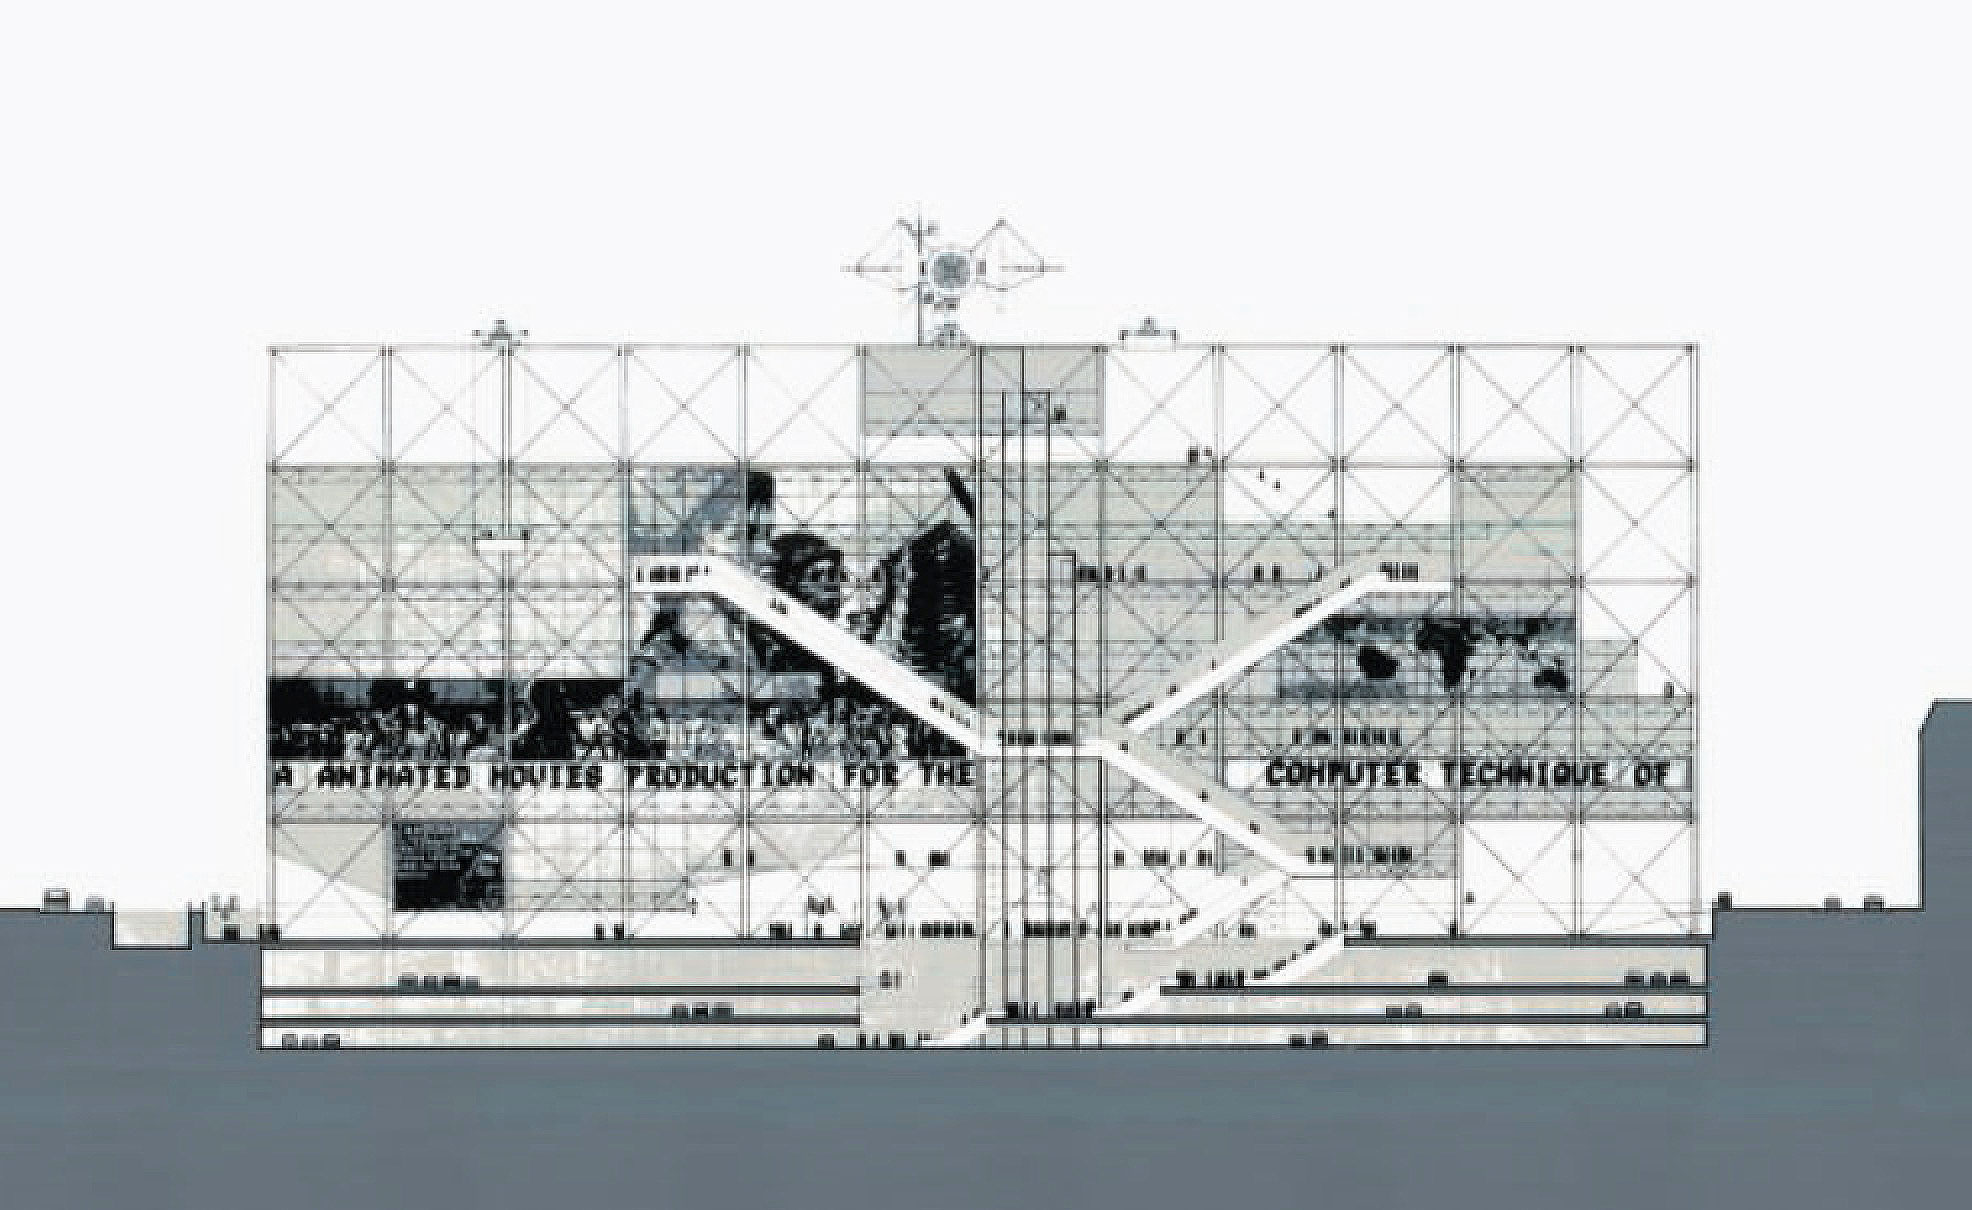 Renzo Piano and Richard Rogers - Pompidou Centre, 1971 Pencil on paper - as featured in Drawing Architecture